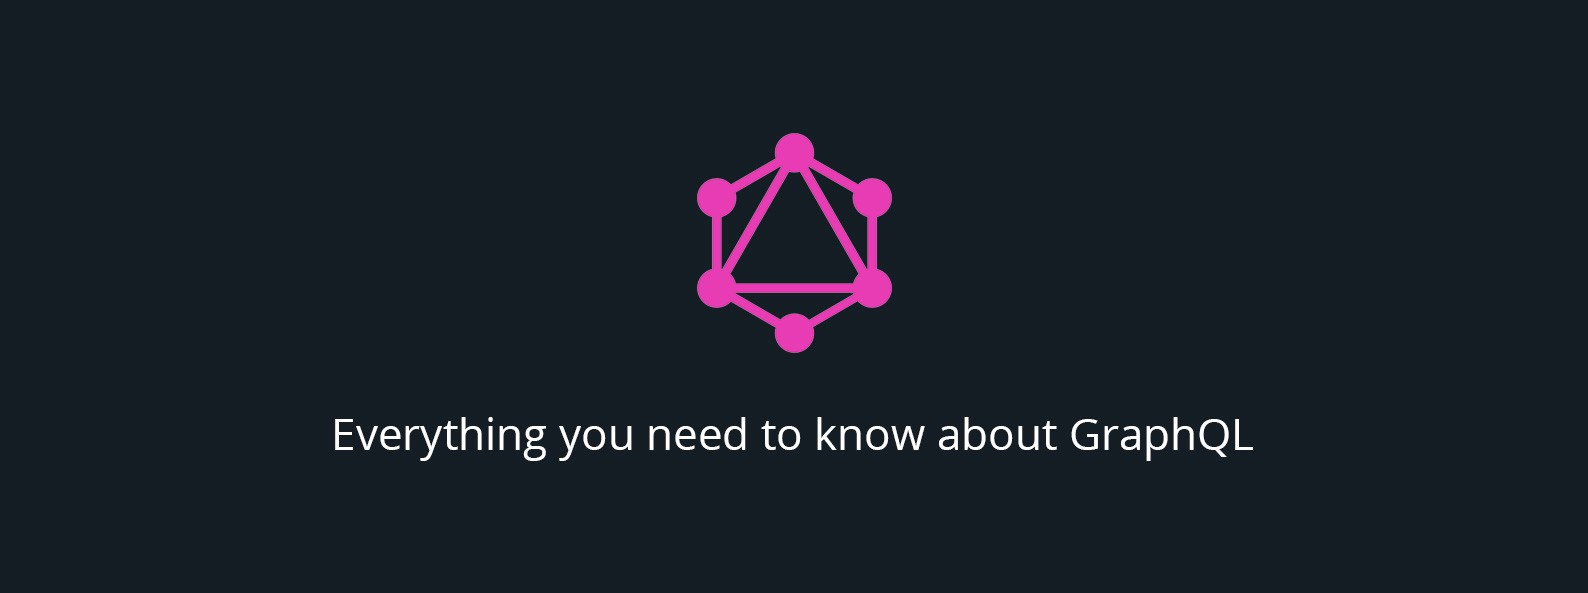 Everything you need to know about GraphQL - By